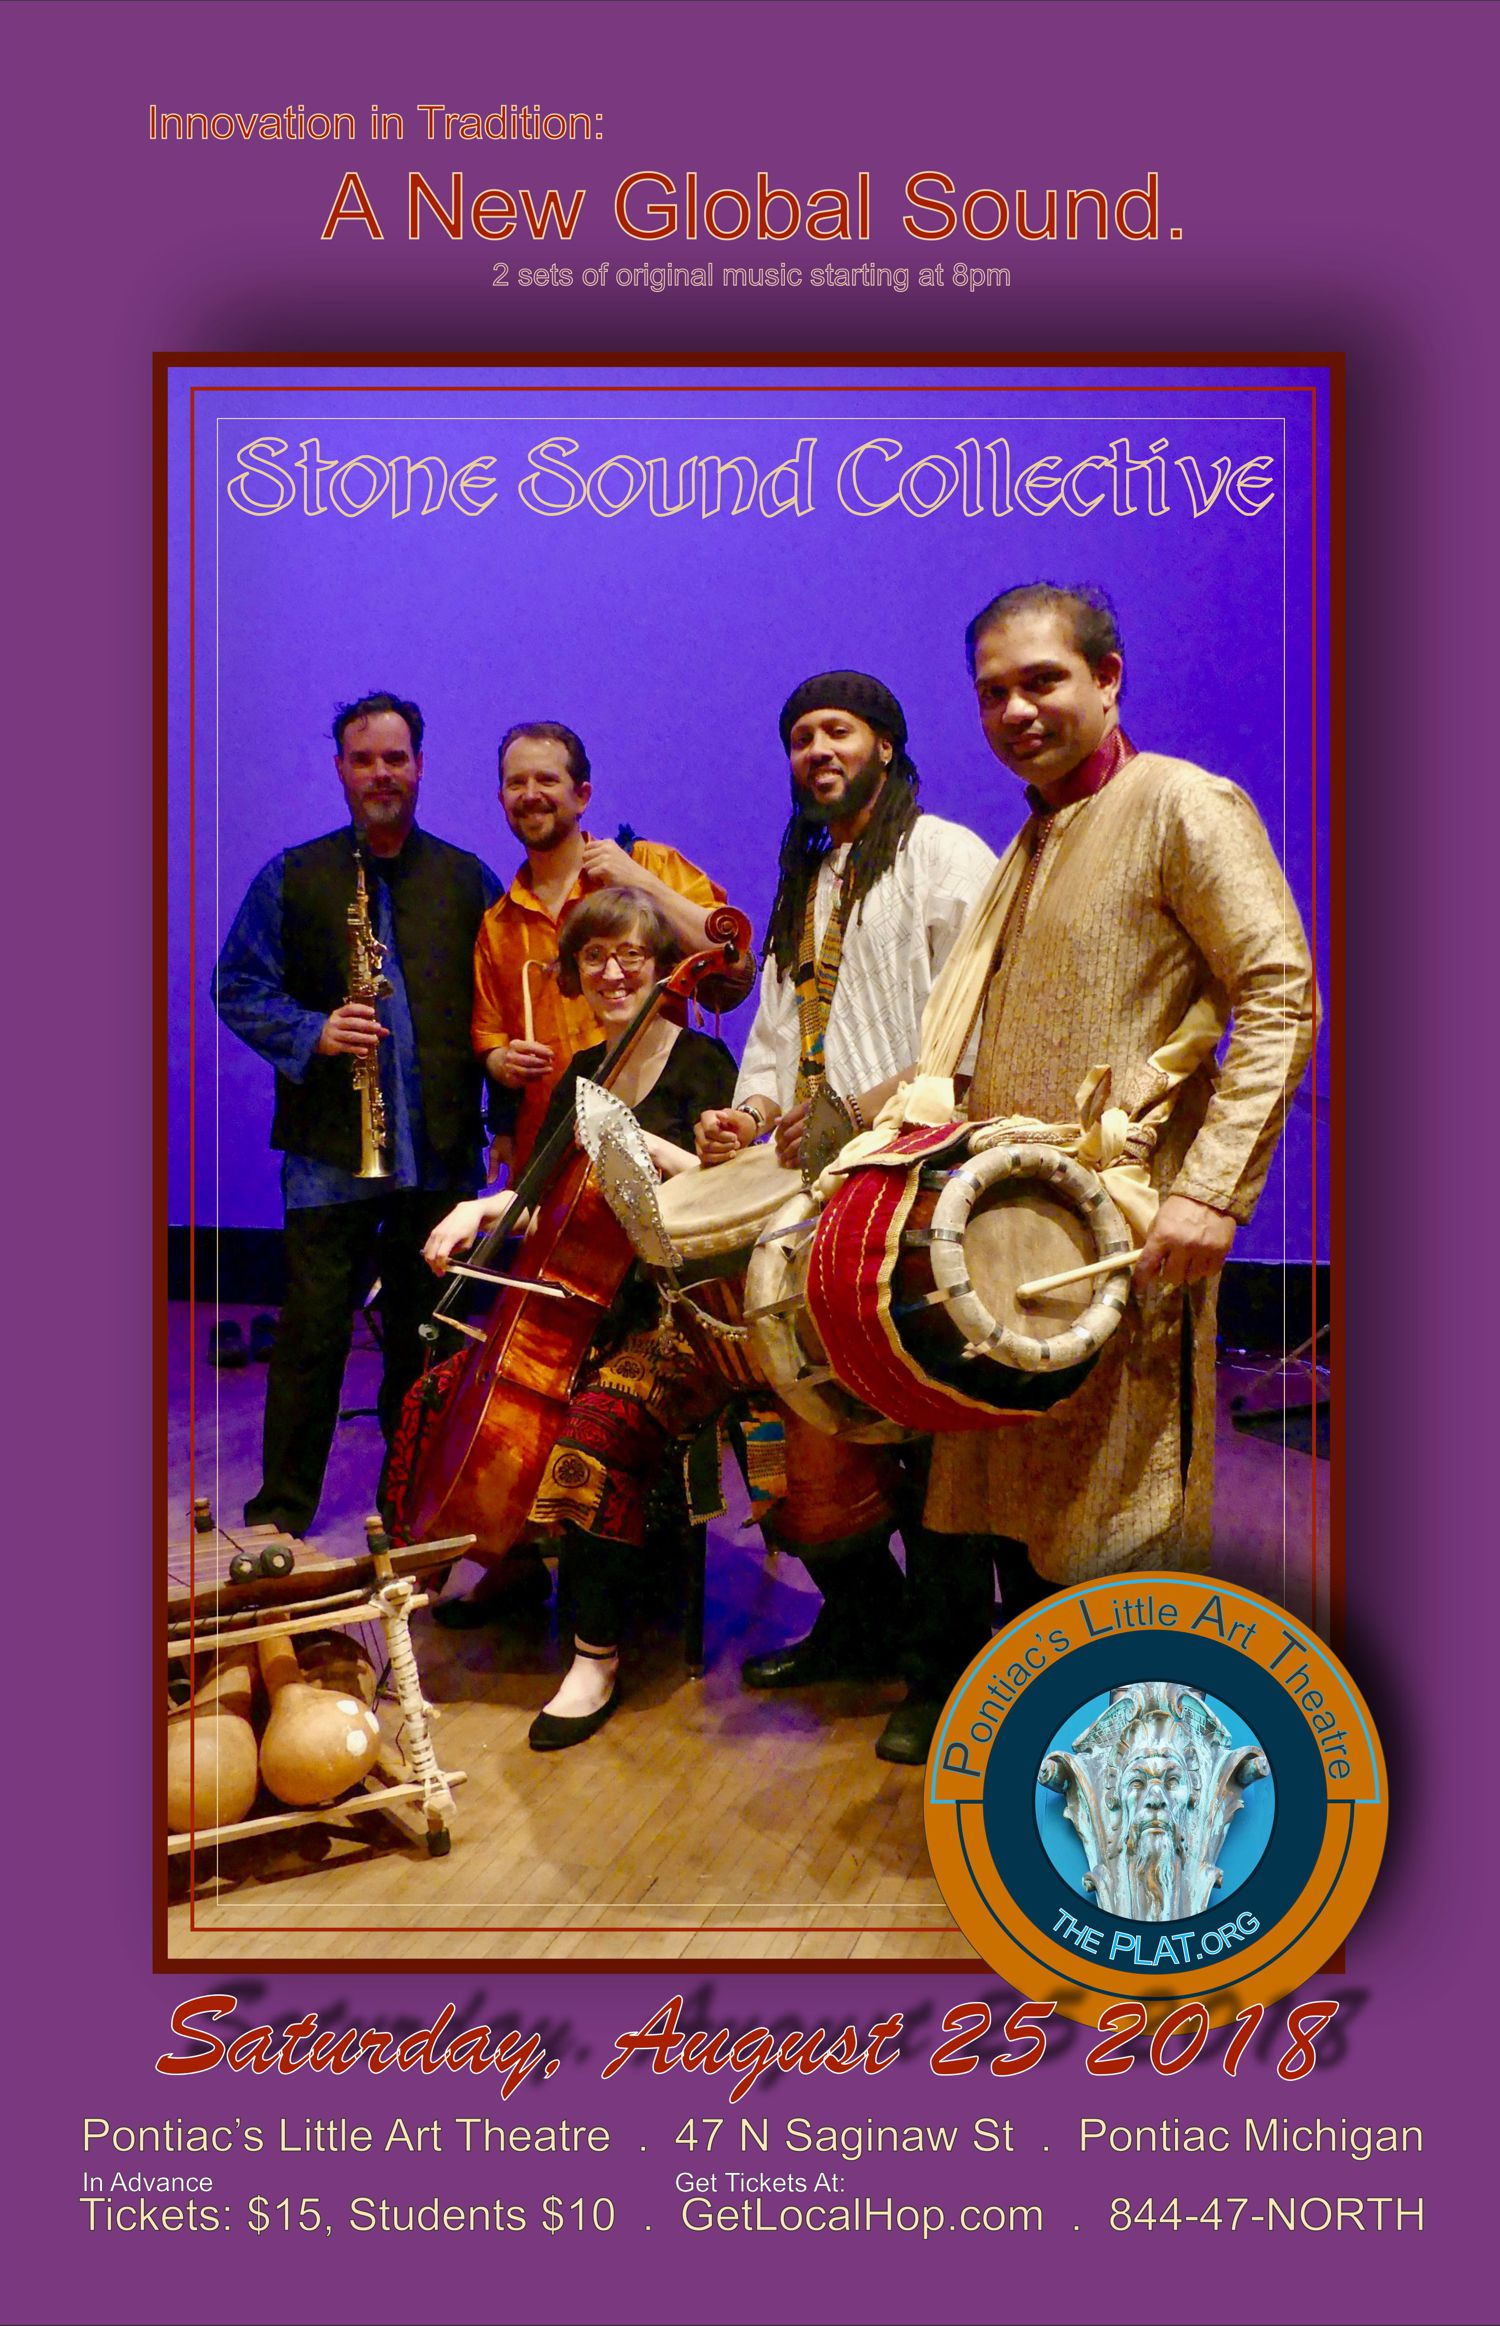 Stone Sound Collective